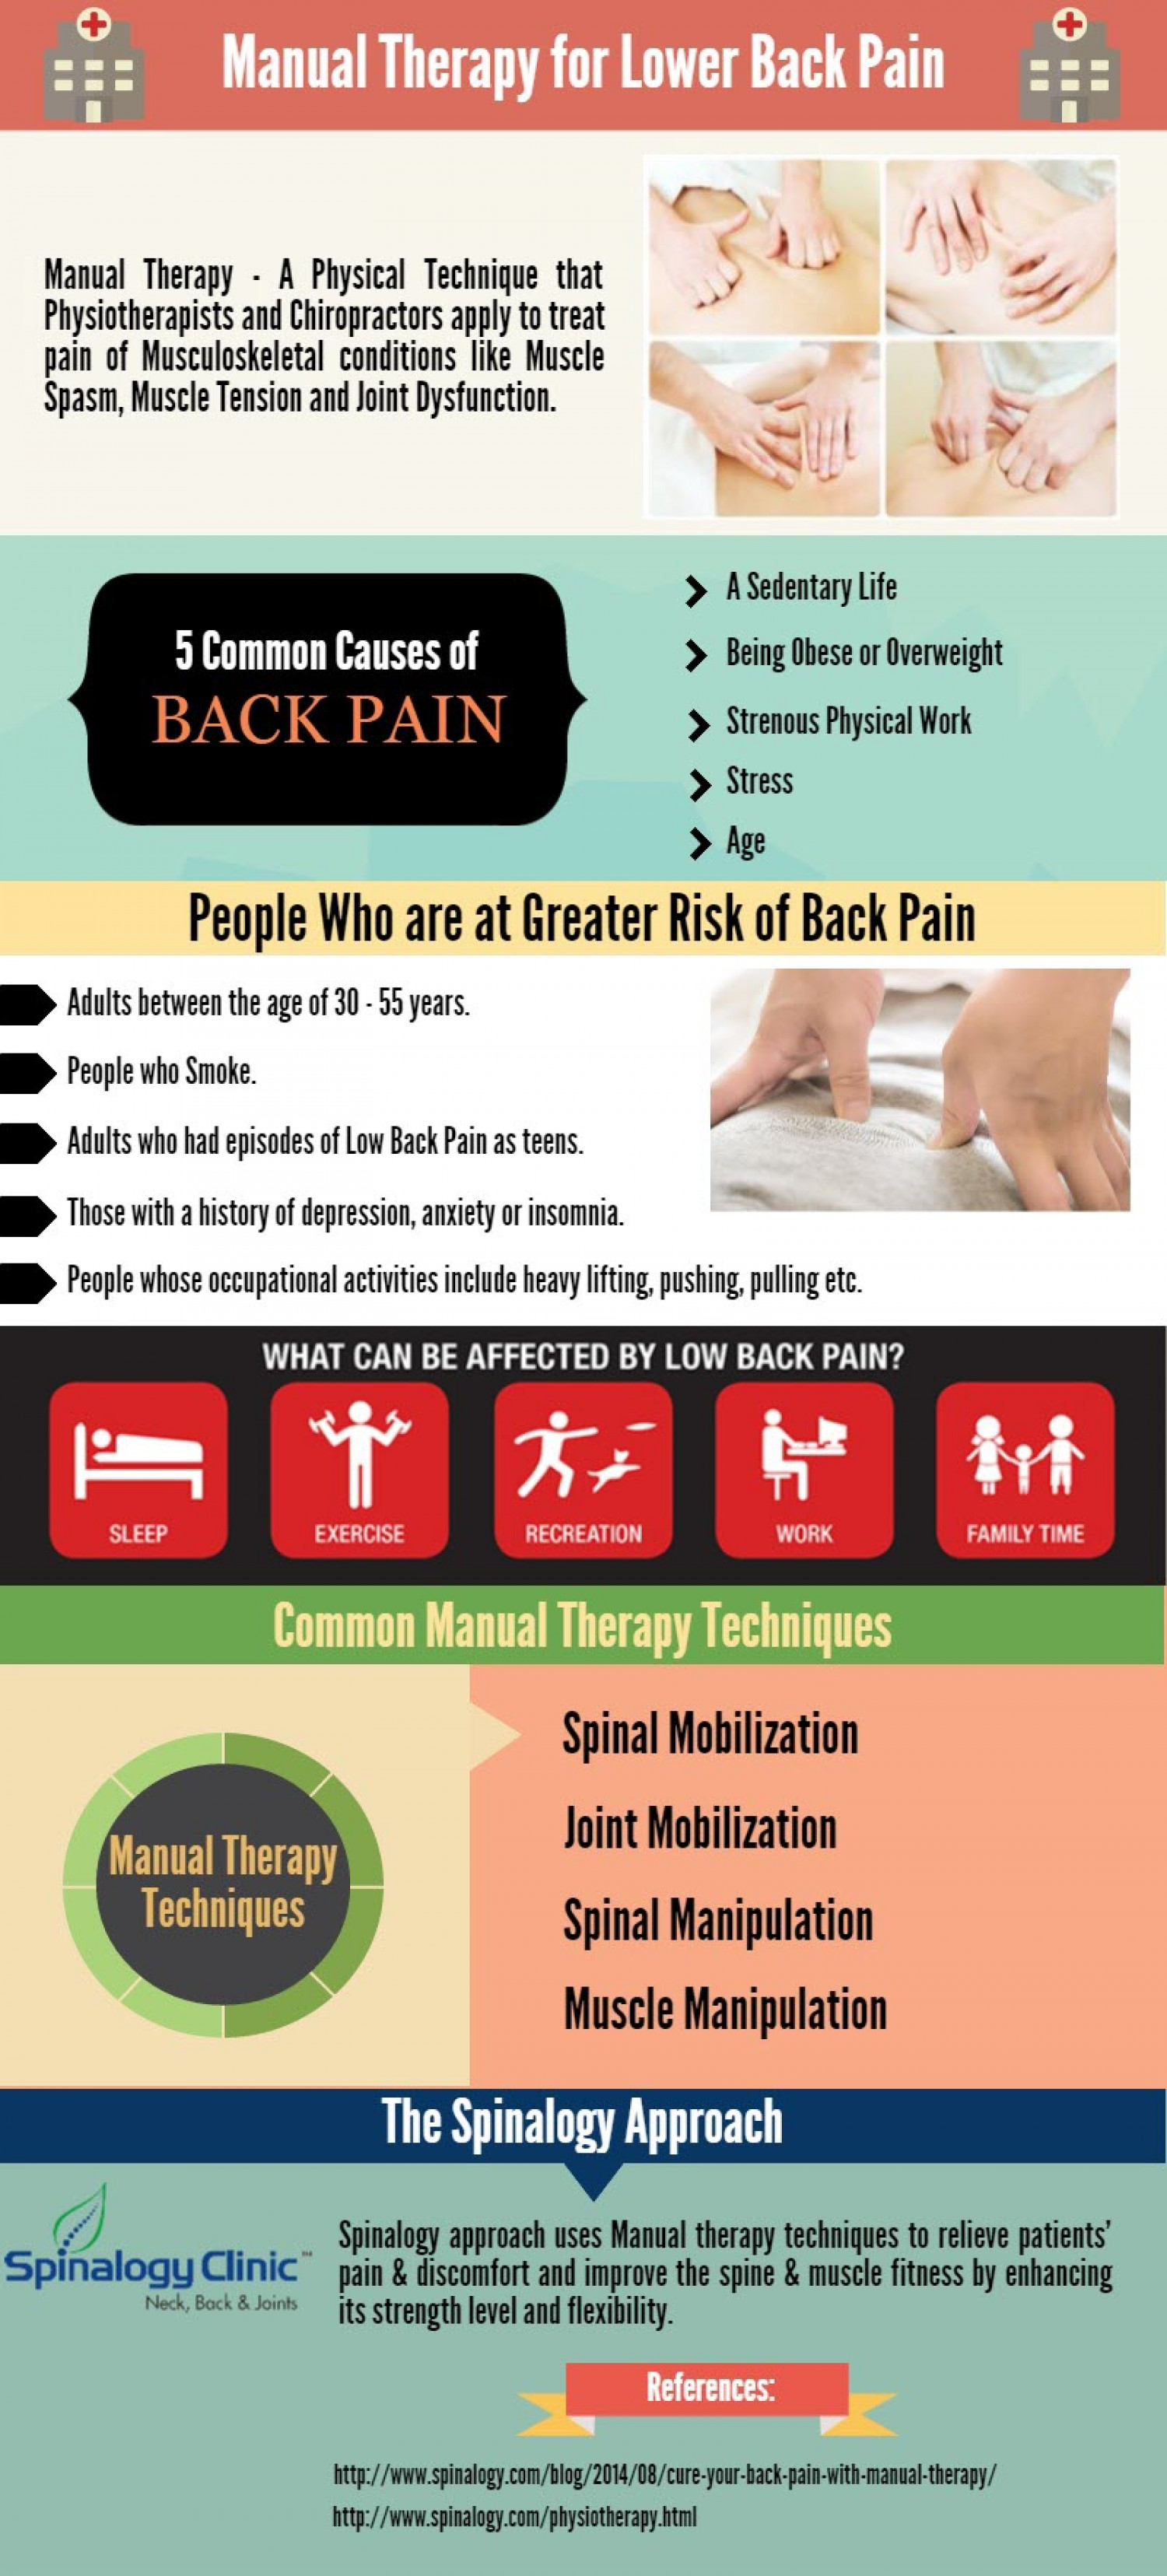 Manual Therapy for Back Pain Infographic